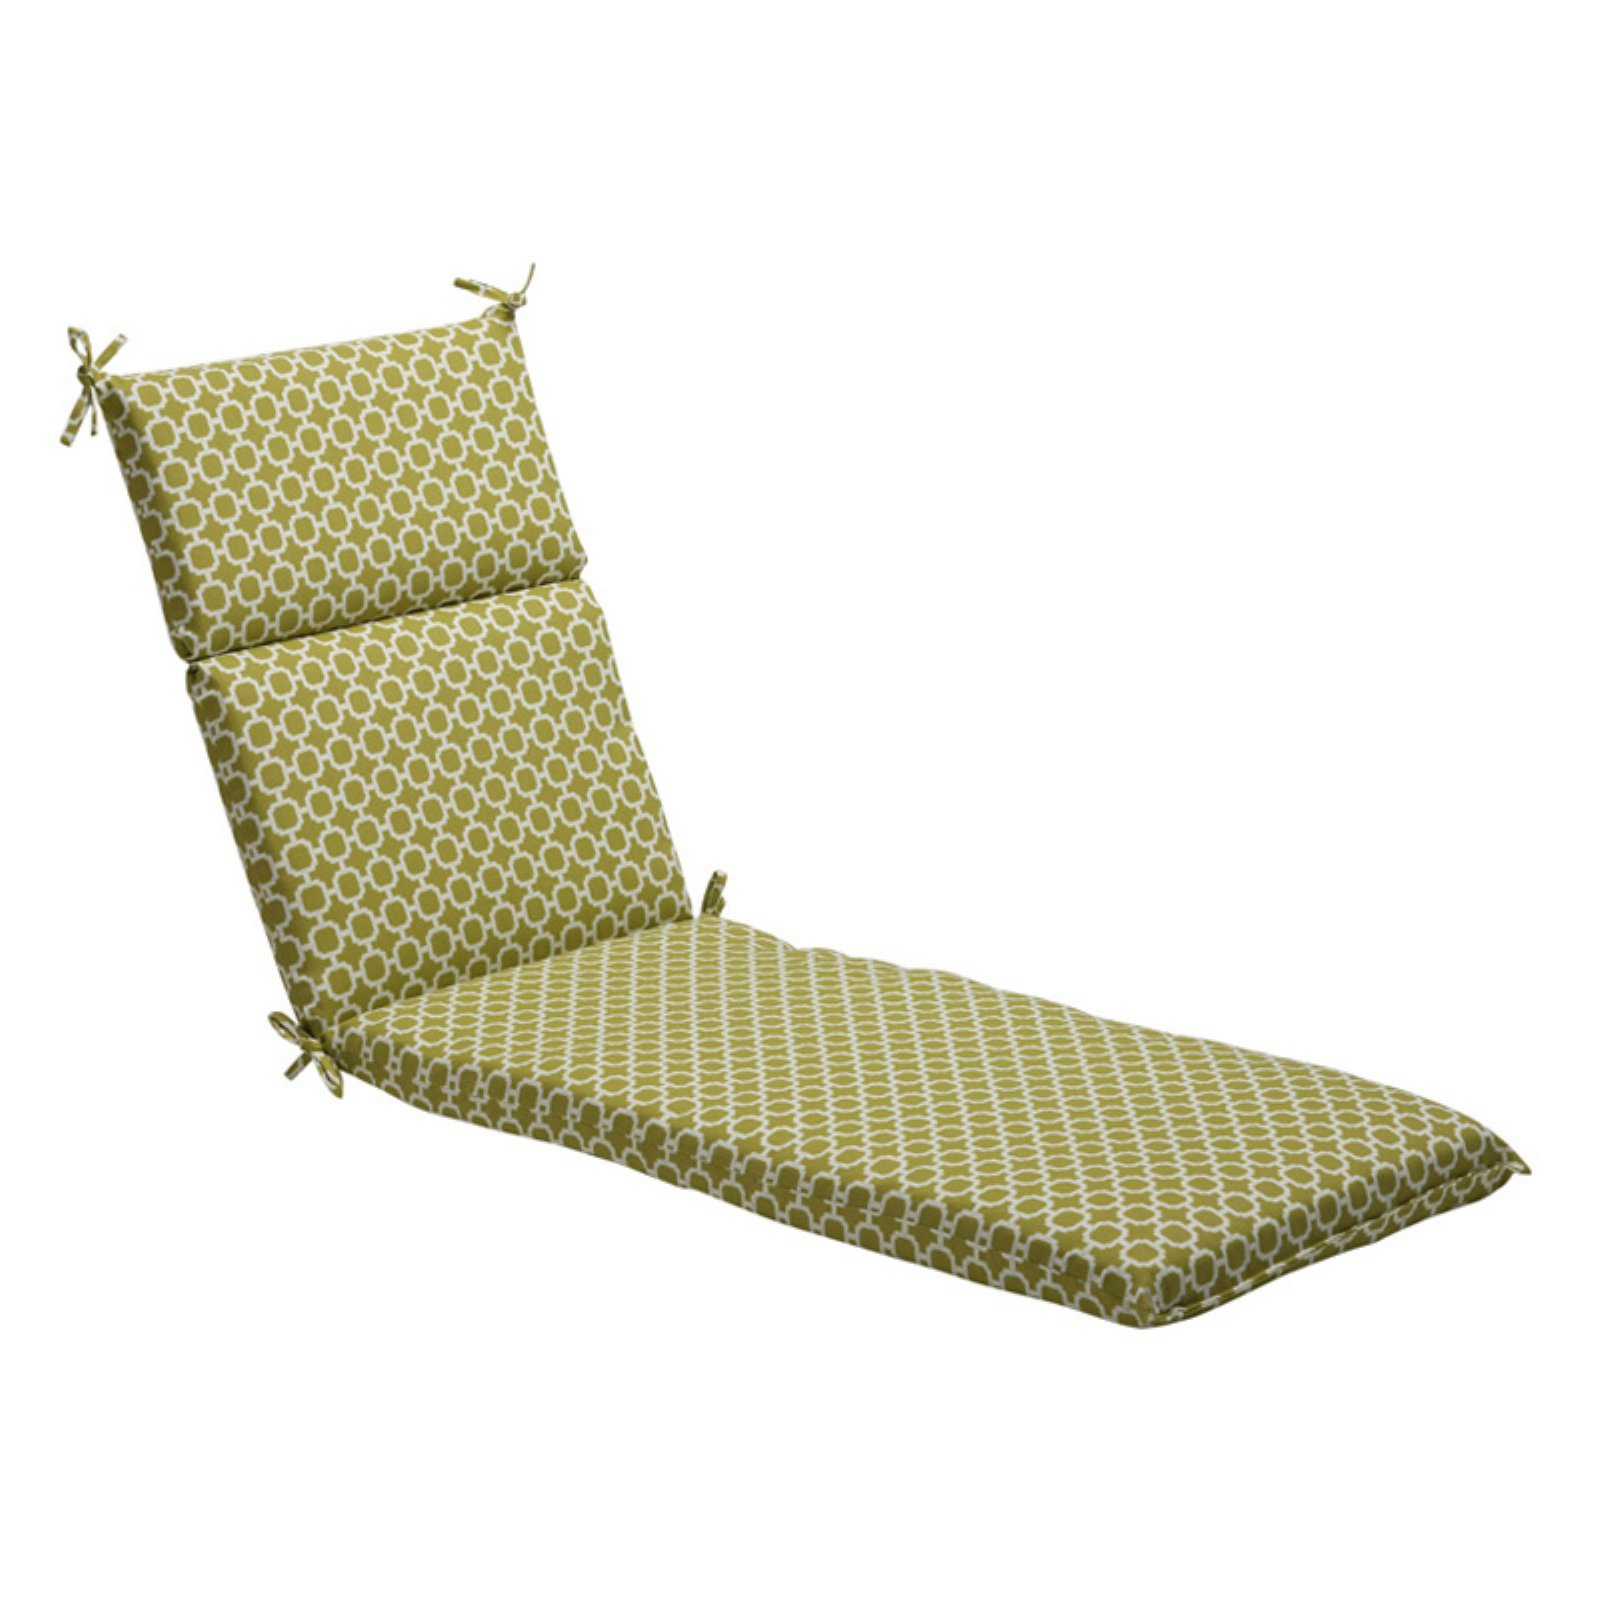 Pillow Perfect Geometric Outdoor Chaise Lounge Cushion - 72.5 x 21 x 3 in.